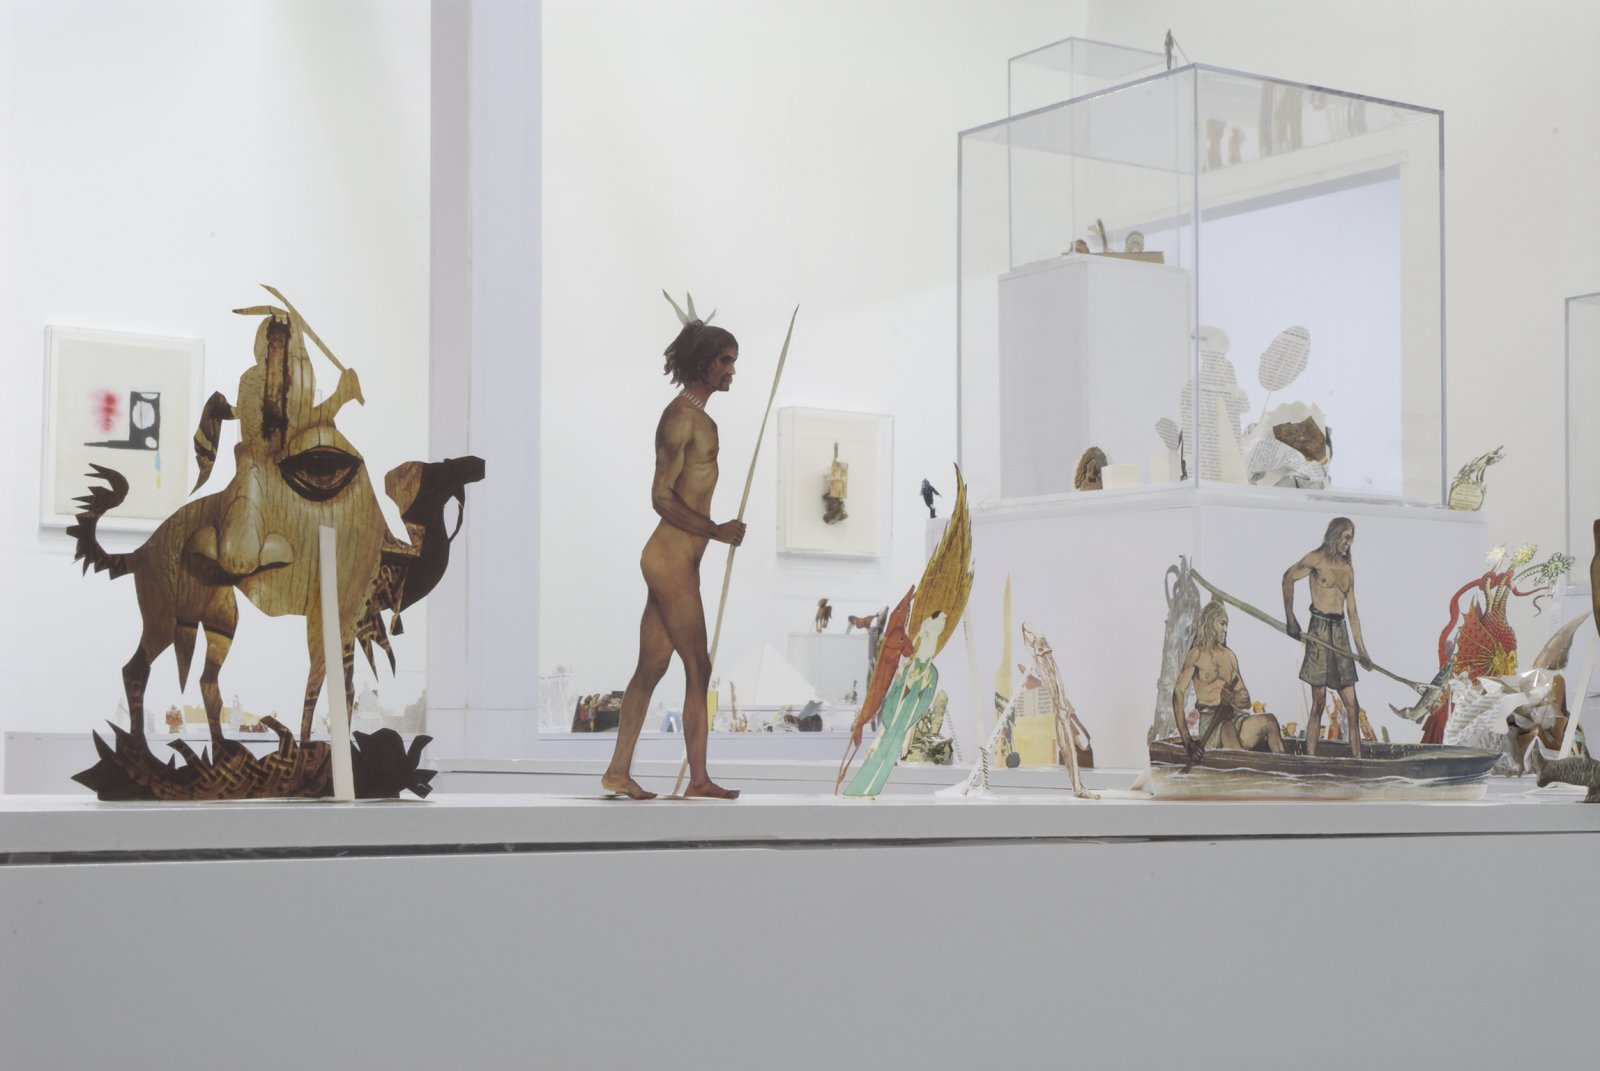 Geoffrey Farmer, The Last Two Million Years, 2007, foamcore plinths, perspex frames and cutouts from selected pages of the history book The Last Two Million Years, dimensions variable. Installation view, The Drawing Room, London, UK, 2007